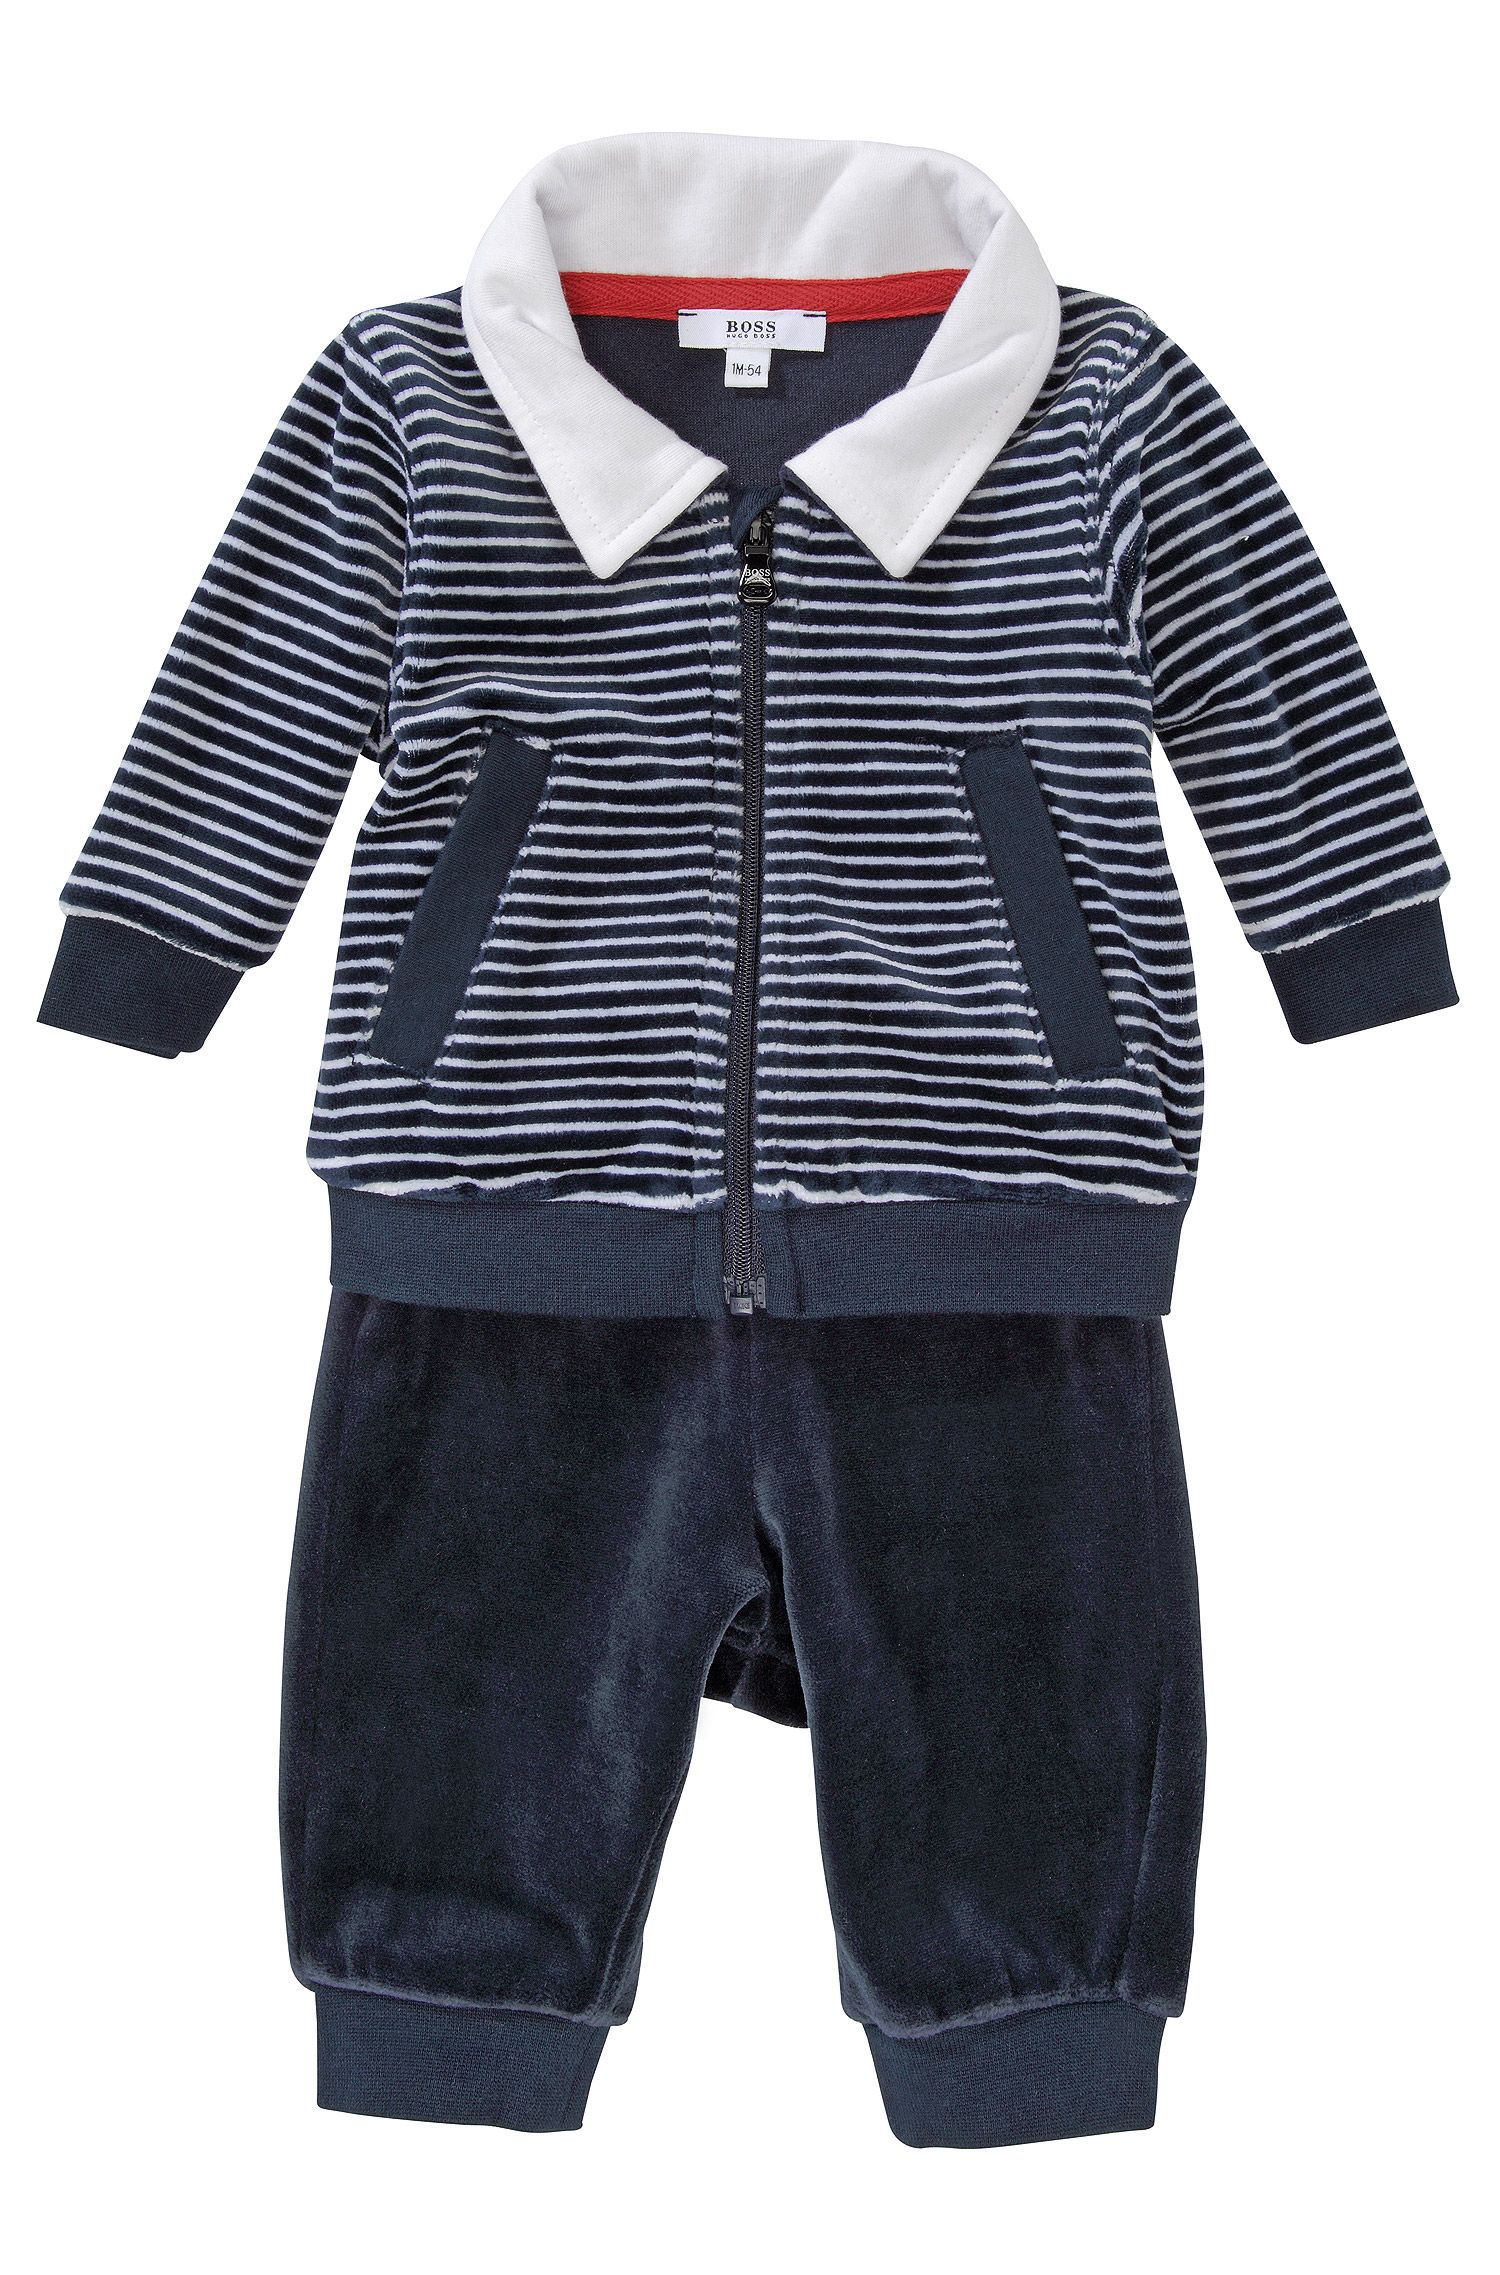 'J98082' | Infant Terry Velvet Activewear Set